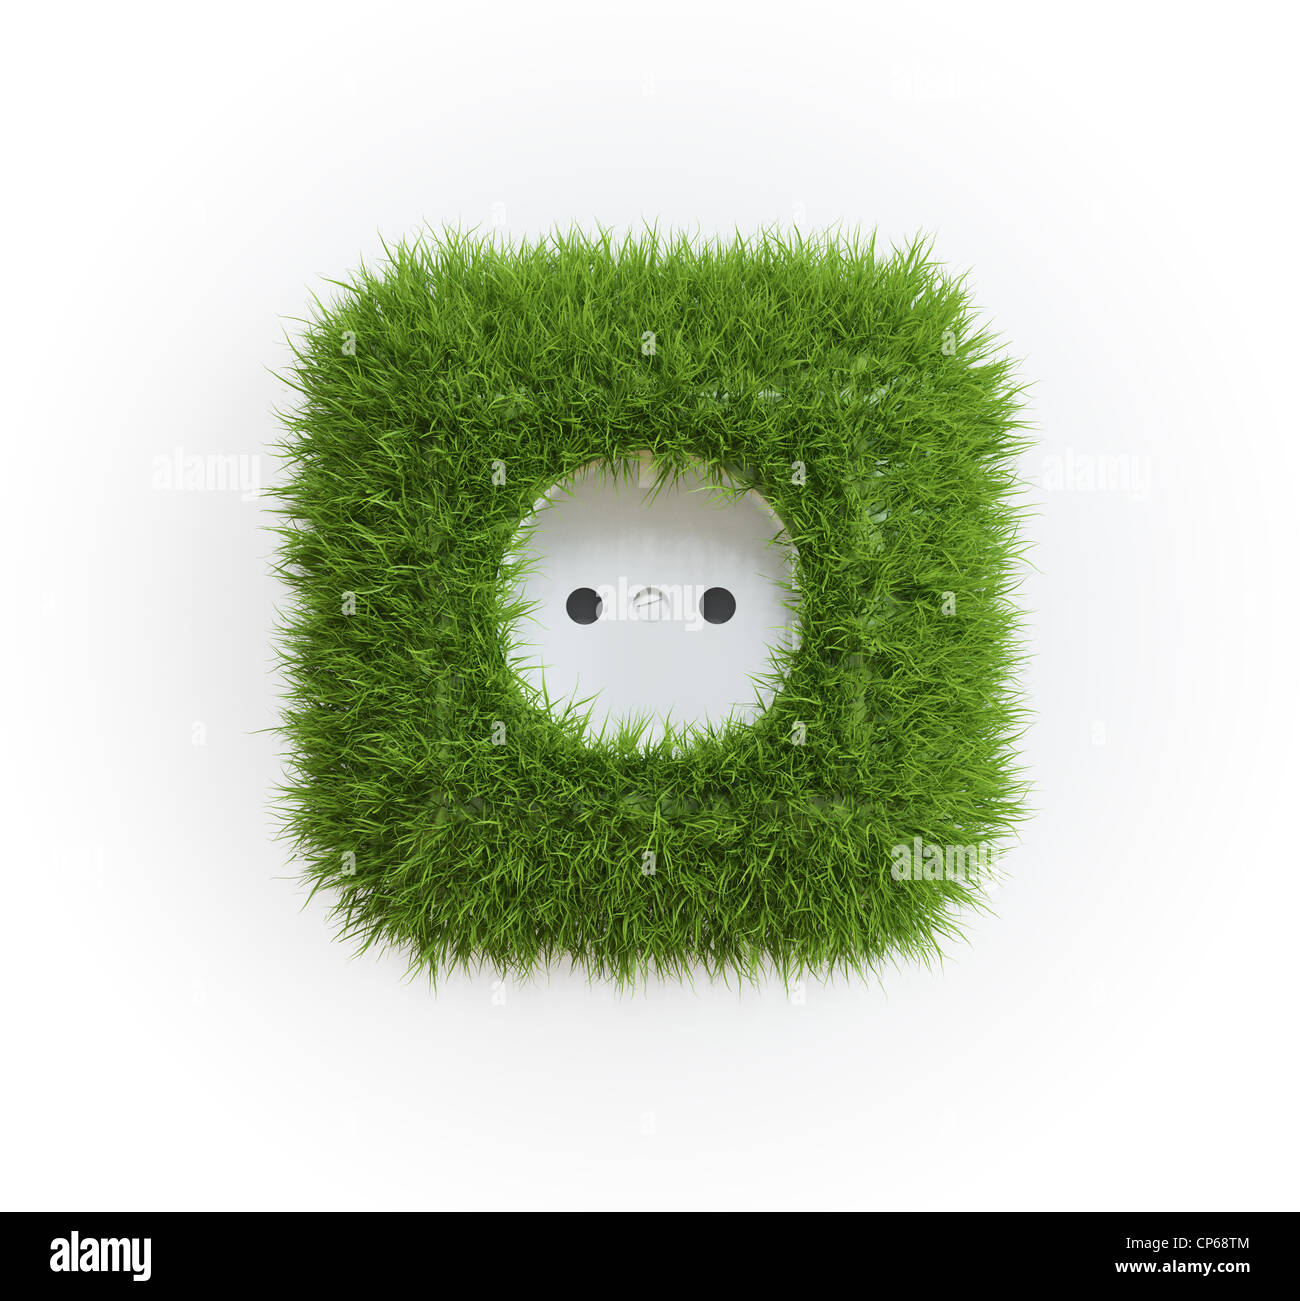 Grass covered outlet - renewable energy concept Stock Foto